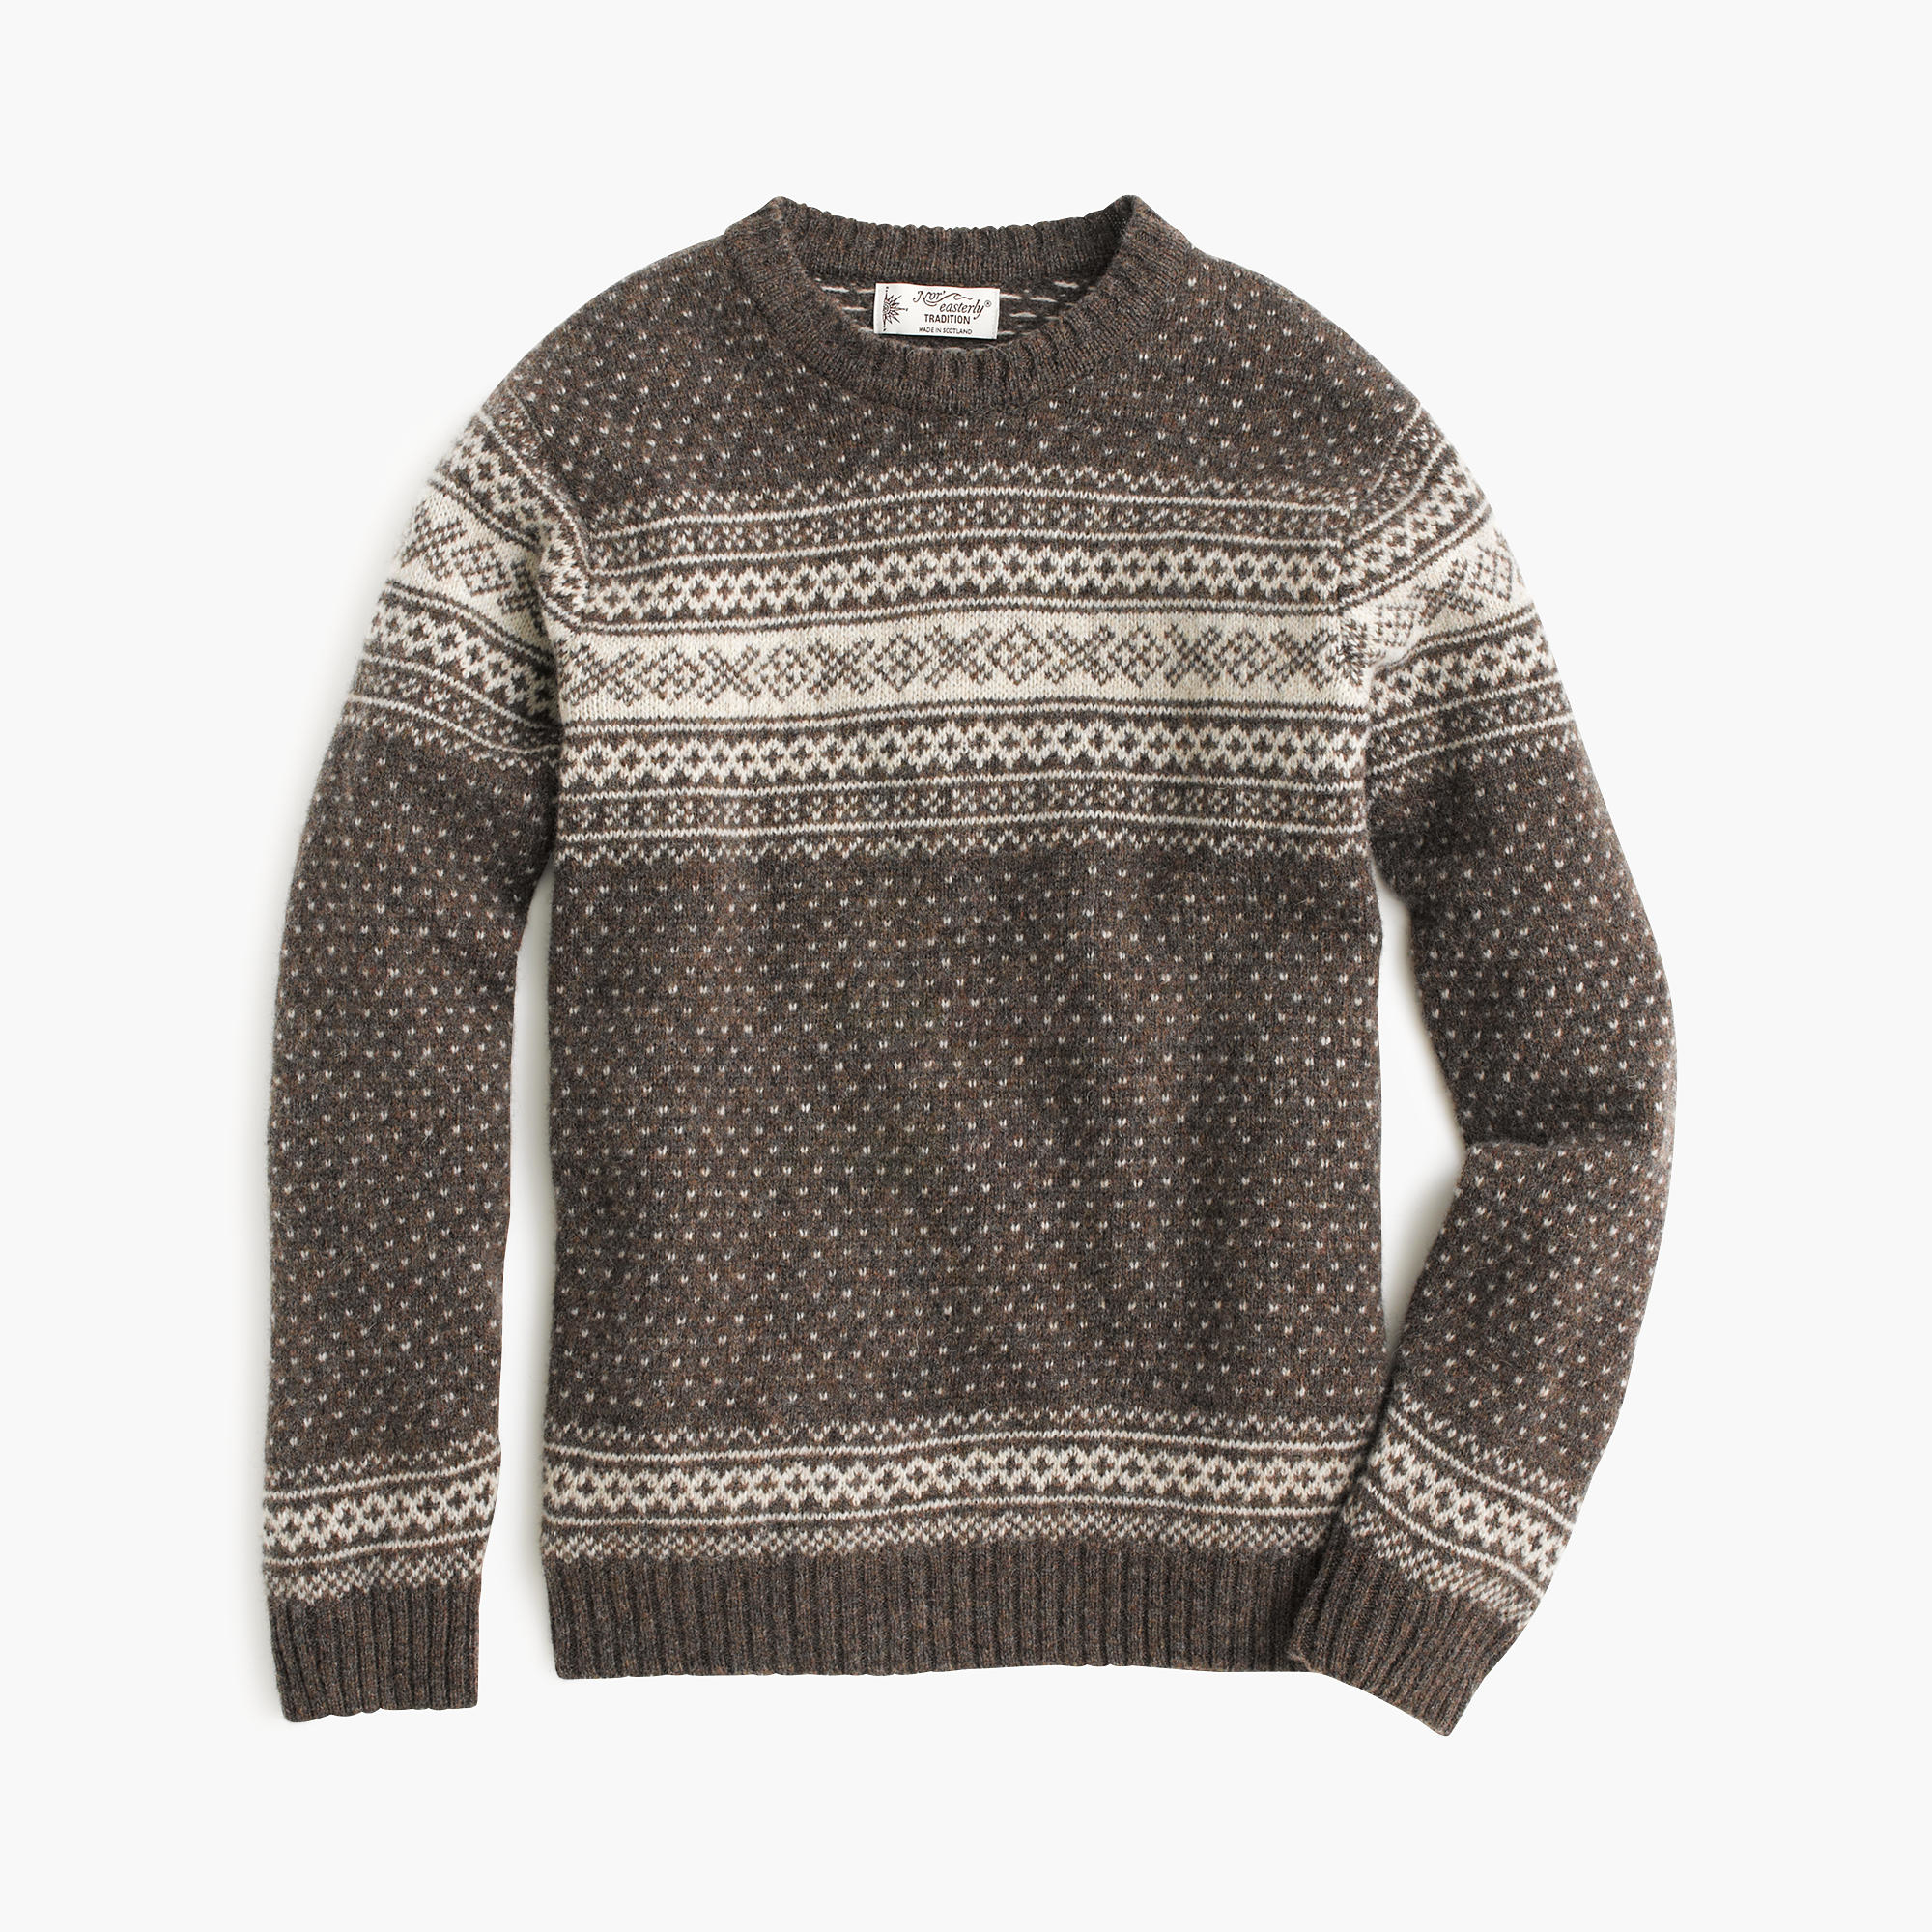 ca2e902127 Lyst - J.Crew Harley Of Scotland Nor easterly Sweater in Gray for Men